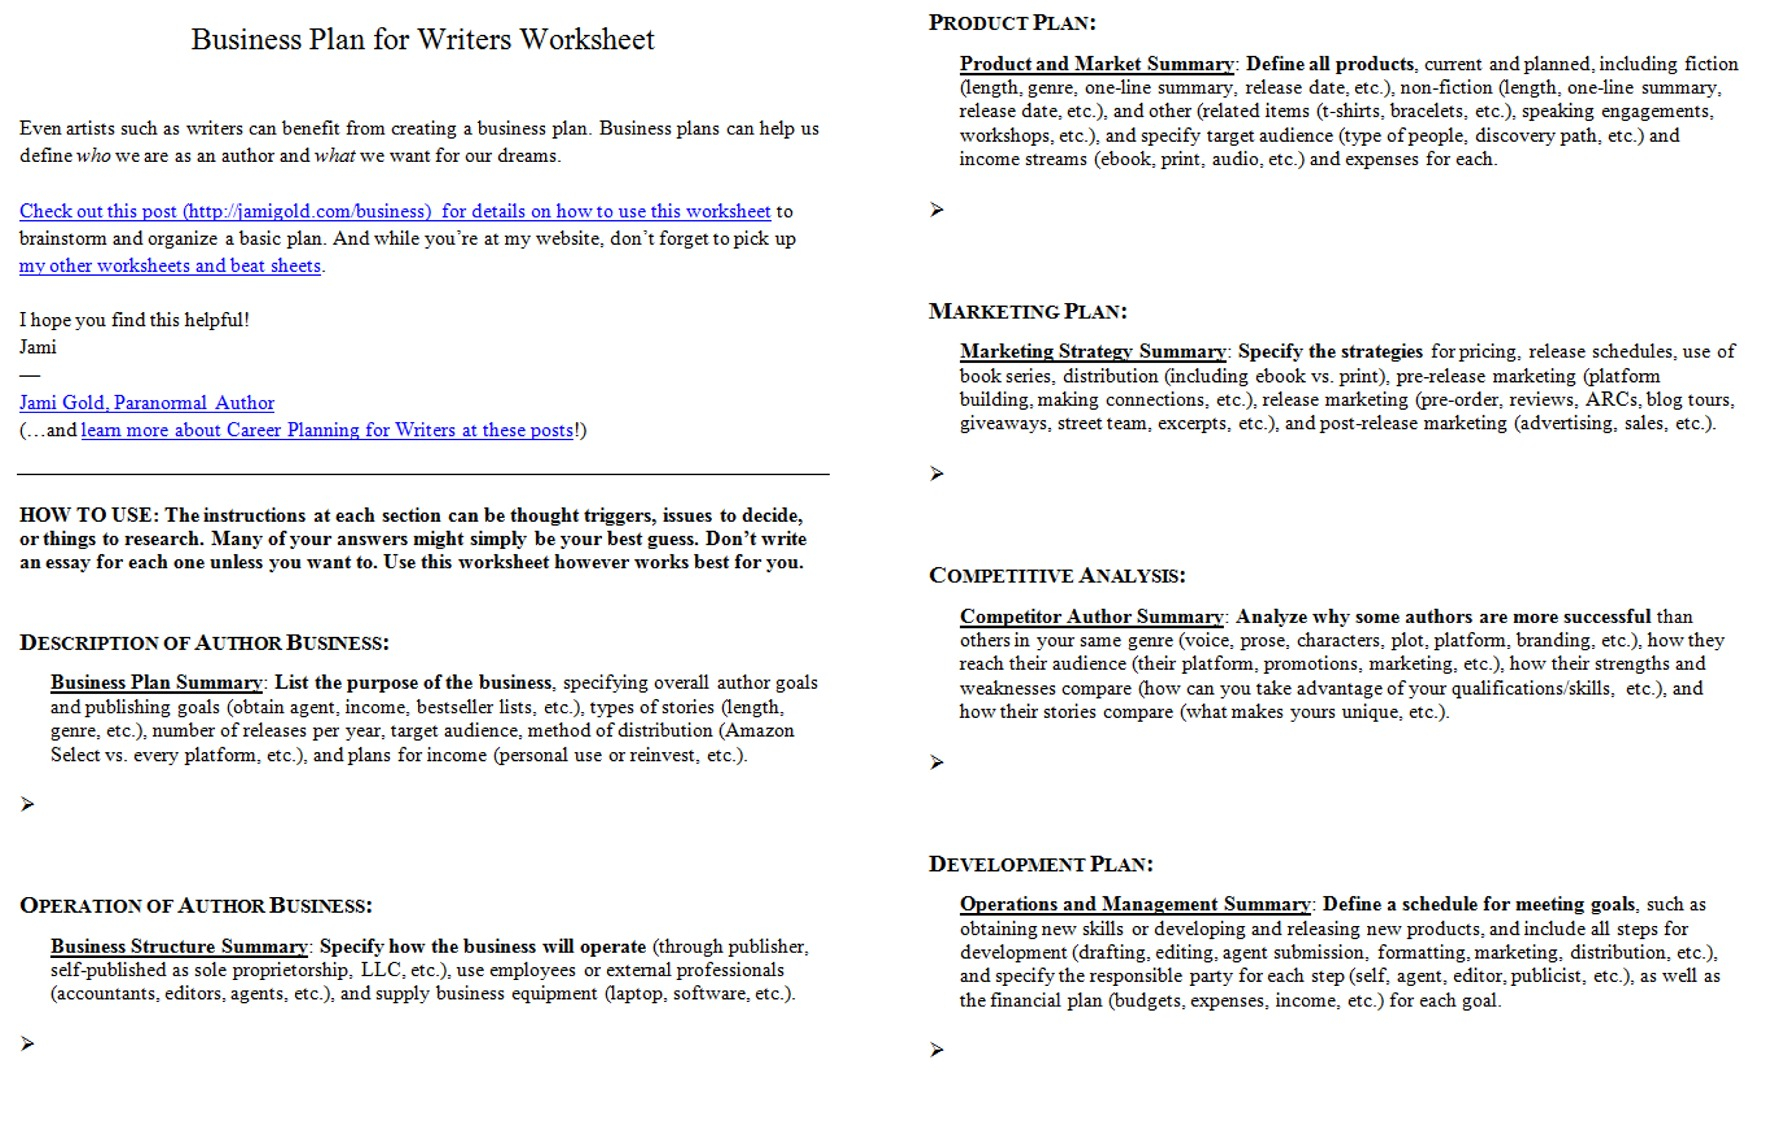 Weirdmailus  Pleasing Worksheets For Writers  Jami Gold Paranormal Author With Handsome Screen Shot Of Both Pages Of The Business Plan For Writers Worksheet With Delightful What Is A Worksheet In Microsoft Excel Also Interior Angles Of A Polygon Worksheet In Addition Density Mass Volume Worksheet And Similes Worksheet For Grade  As Well As Science Th Grade Worksheets Additionally Patterns For Kindergarten Printable Worksheet From Jamigoldcom With Weirdmailus  Handsome Worksheets For Writers  Jami Gold Paranormal Author With Delightful Screen Shot Of Both Pages Of The Business Plan For Writers Worksheet And Pleasing What Is A Worksheet In Microsoft Excel Also Interior Angles Of A Polygon Worksheet In Addition Density Mass Volume Worksheet From Jamigoldcom